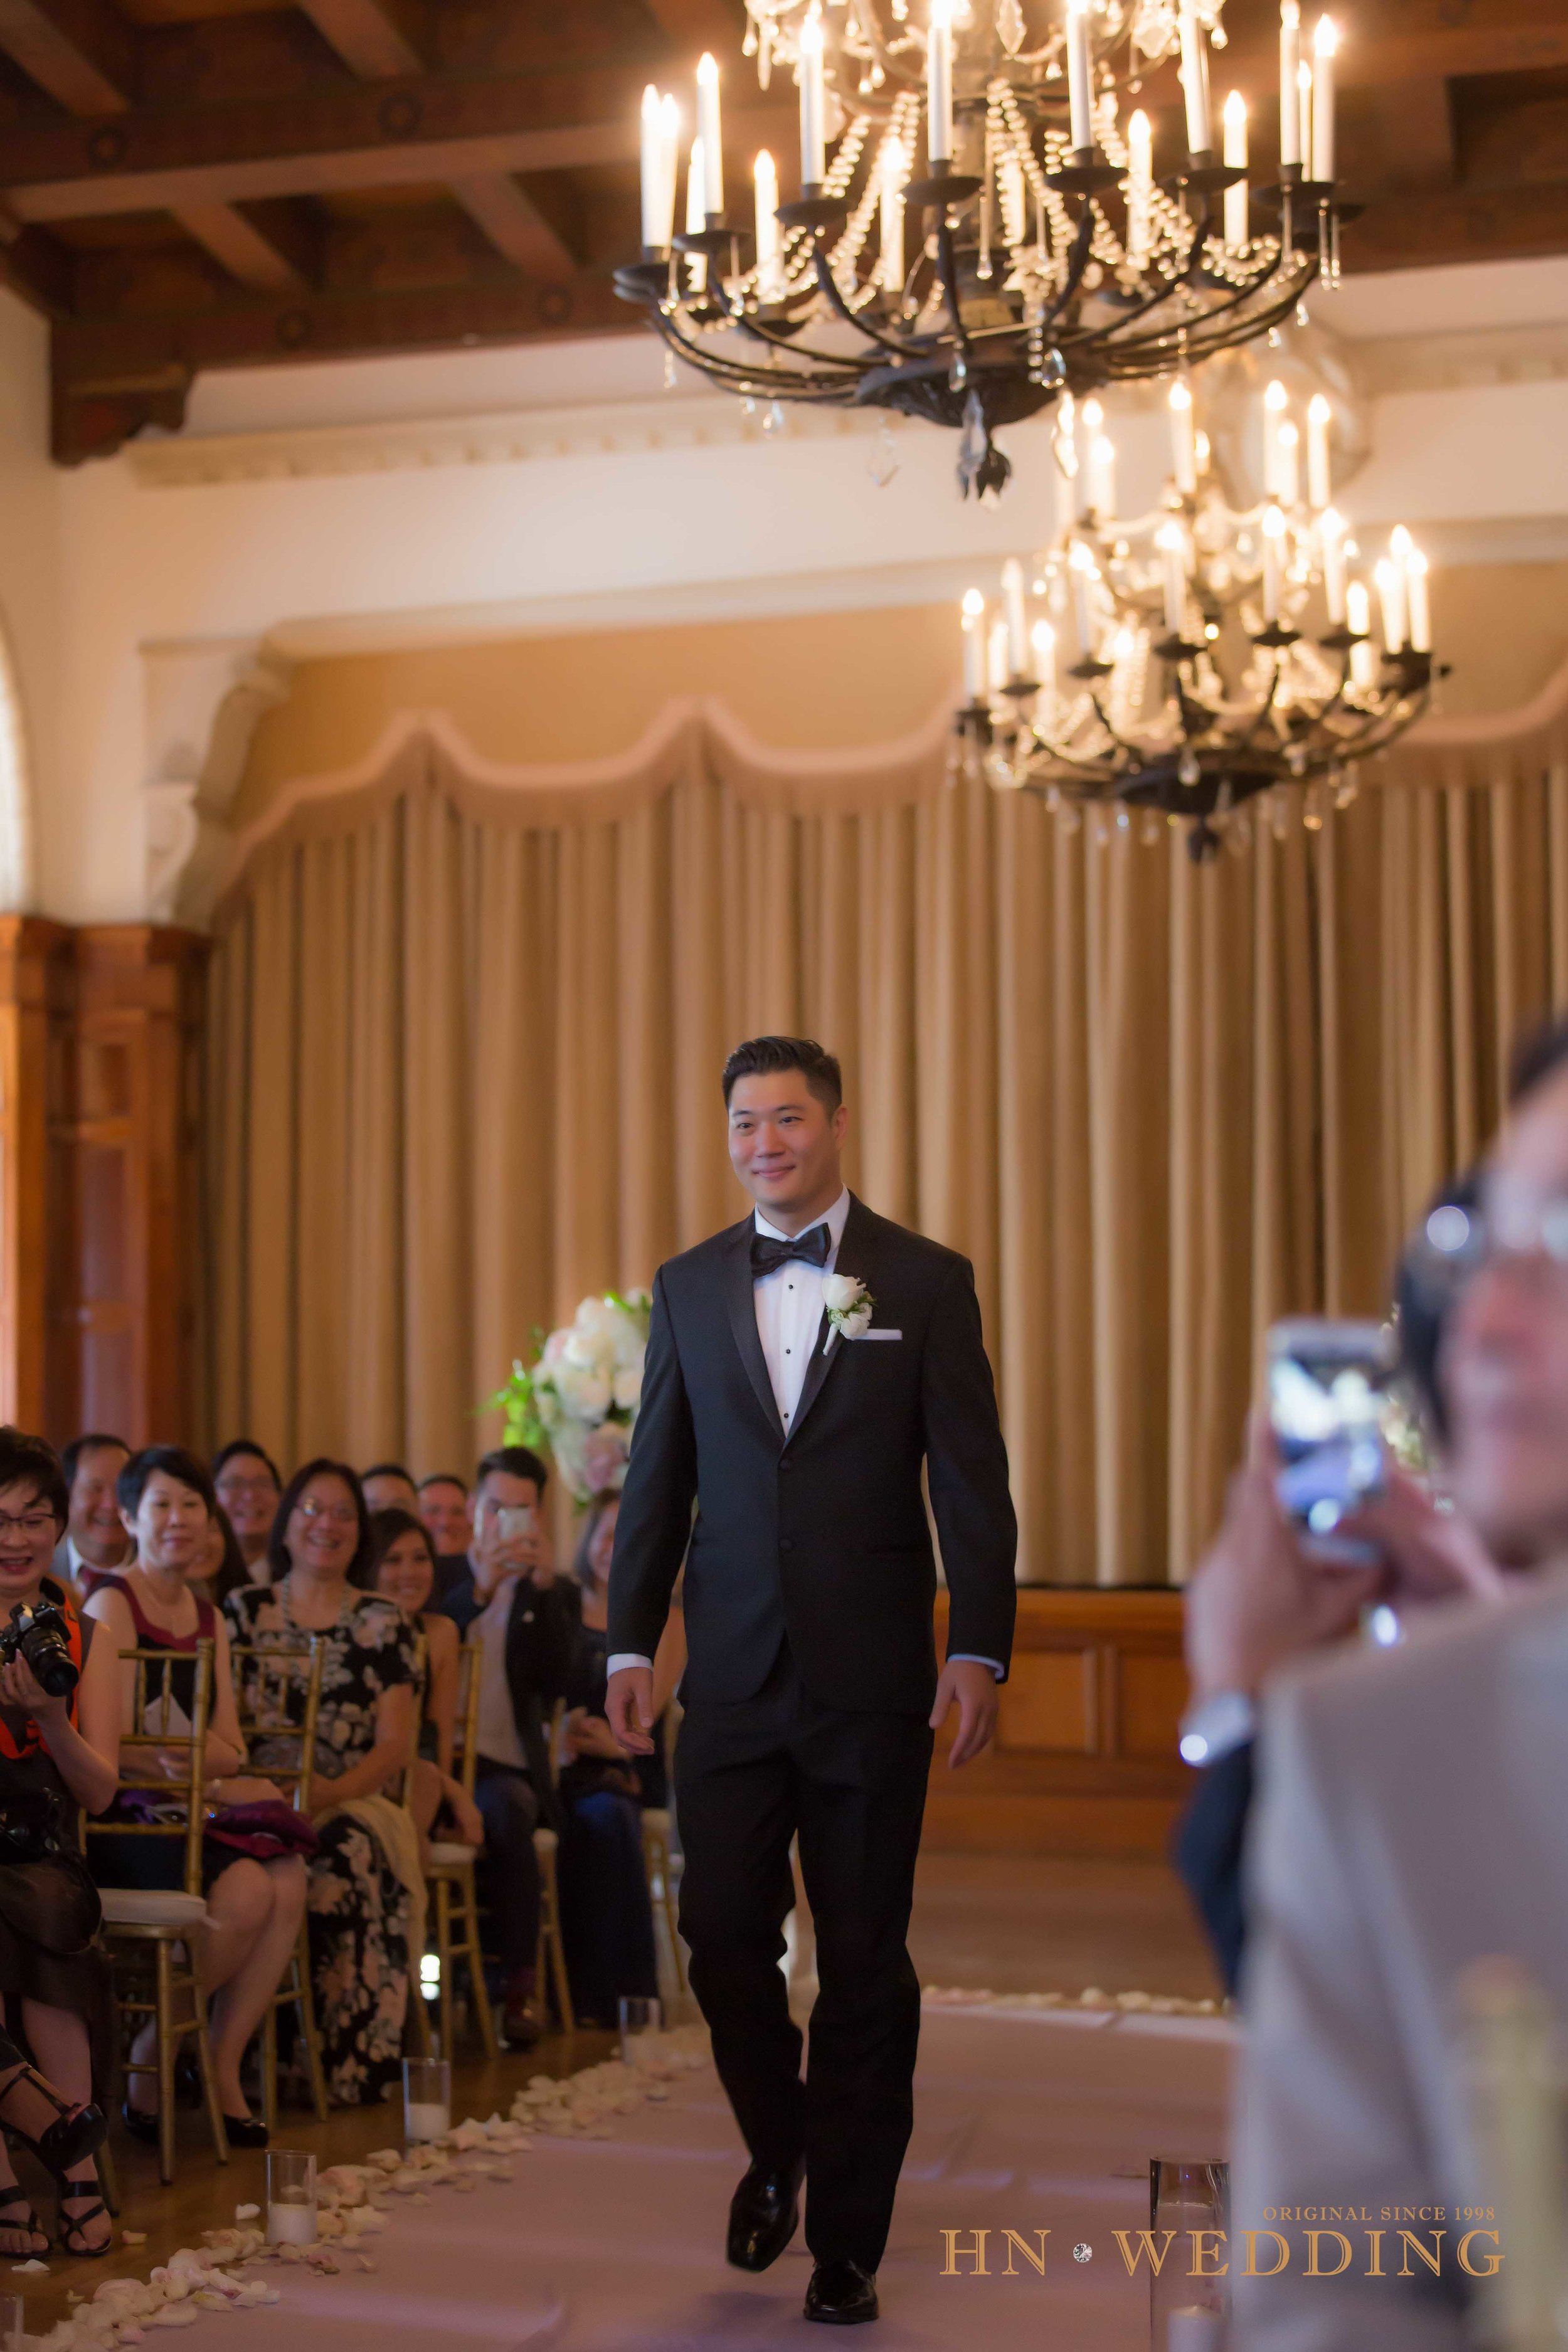 HNwedding-20160917-weddingday-41.jpg